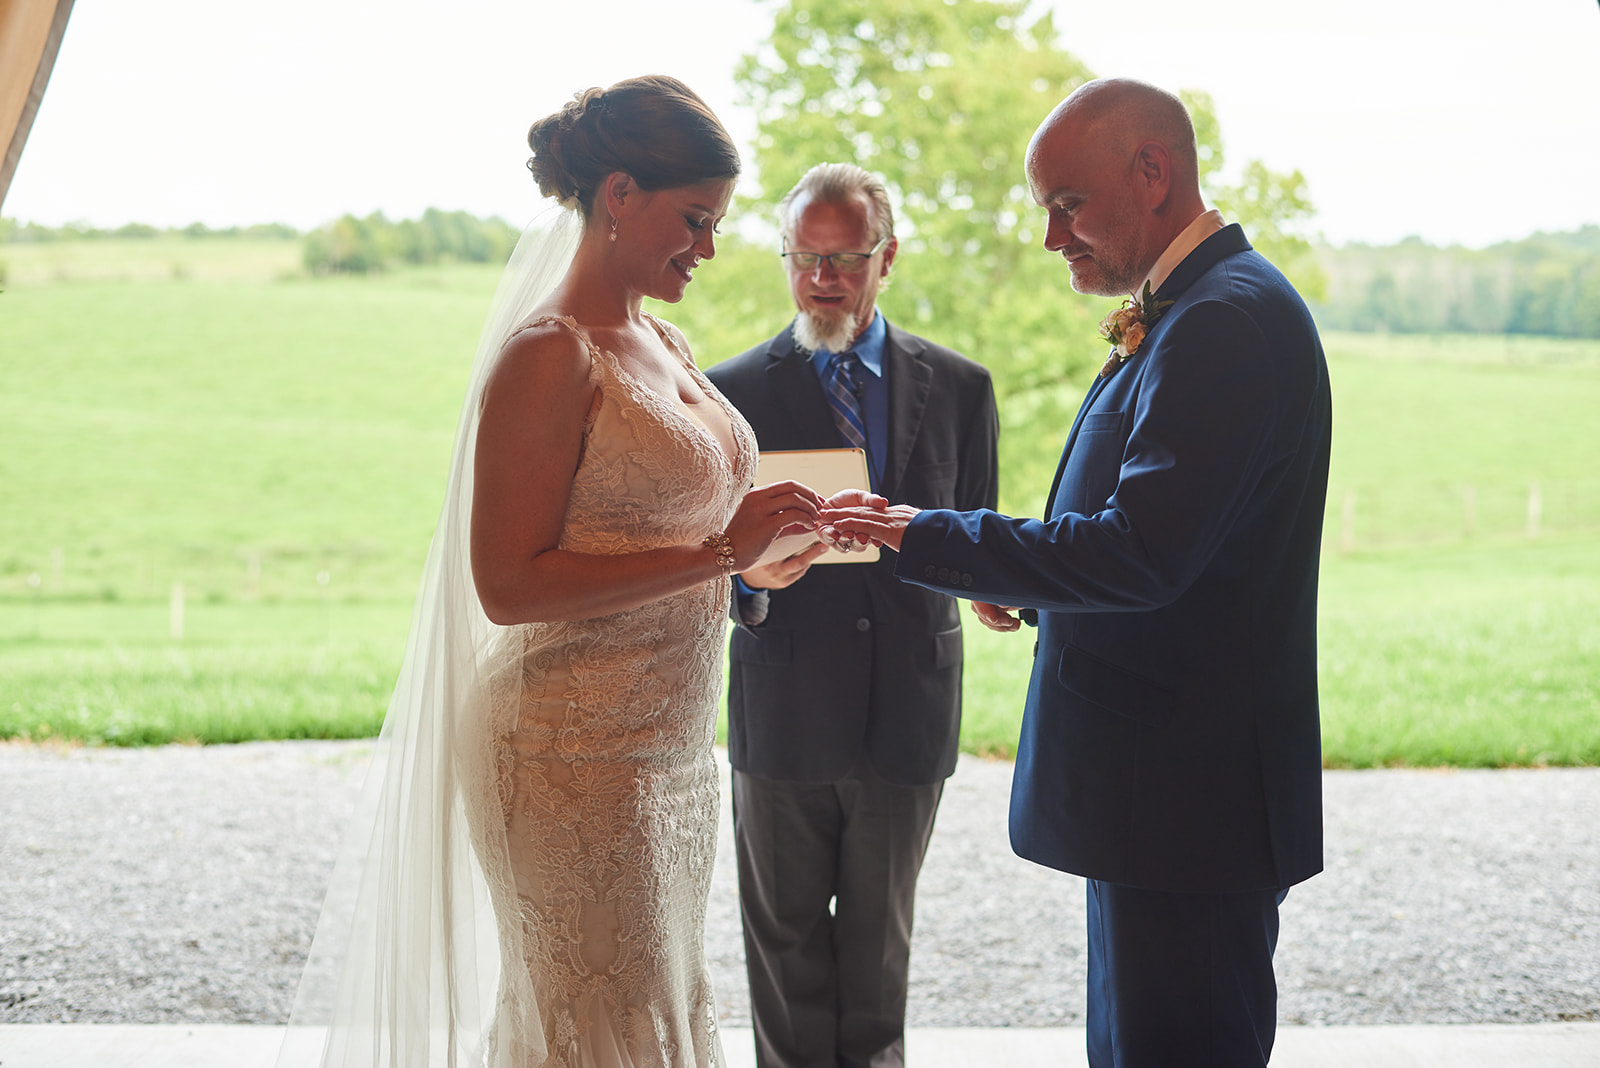 Exchange of vows at barn wedding ceremony